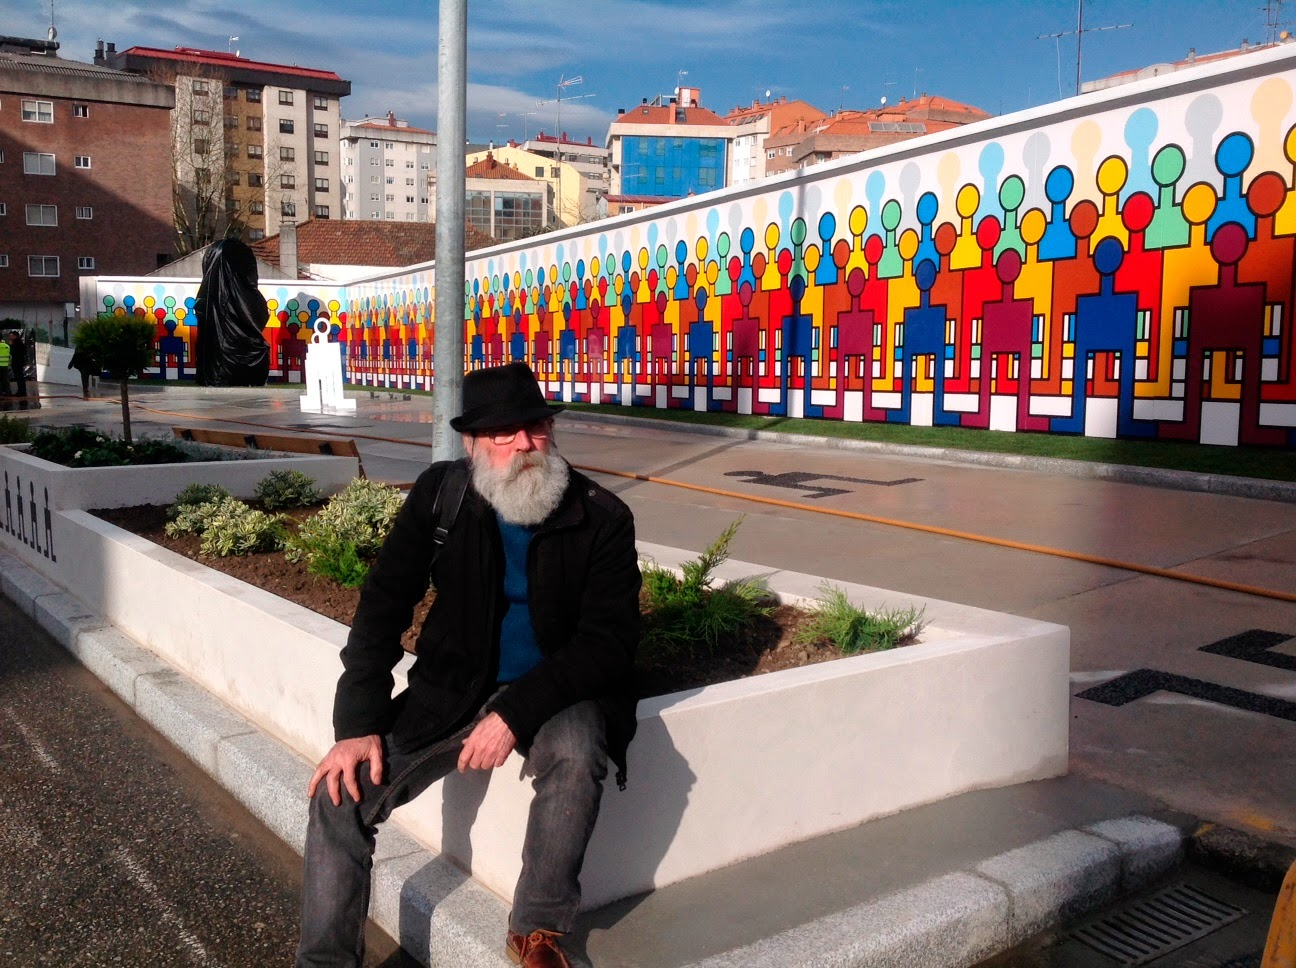 street art vigo city of colours mur large figures humaines Nelson Villalobos - Destination Vigo, la nouvelle capitale espagnole du street art